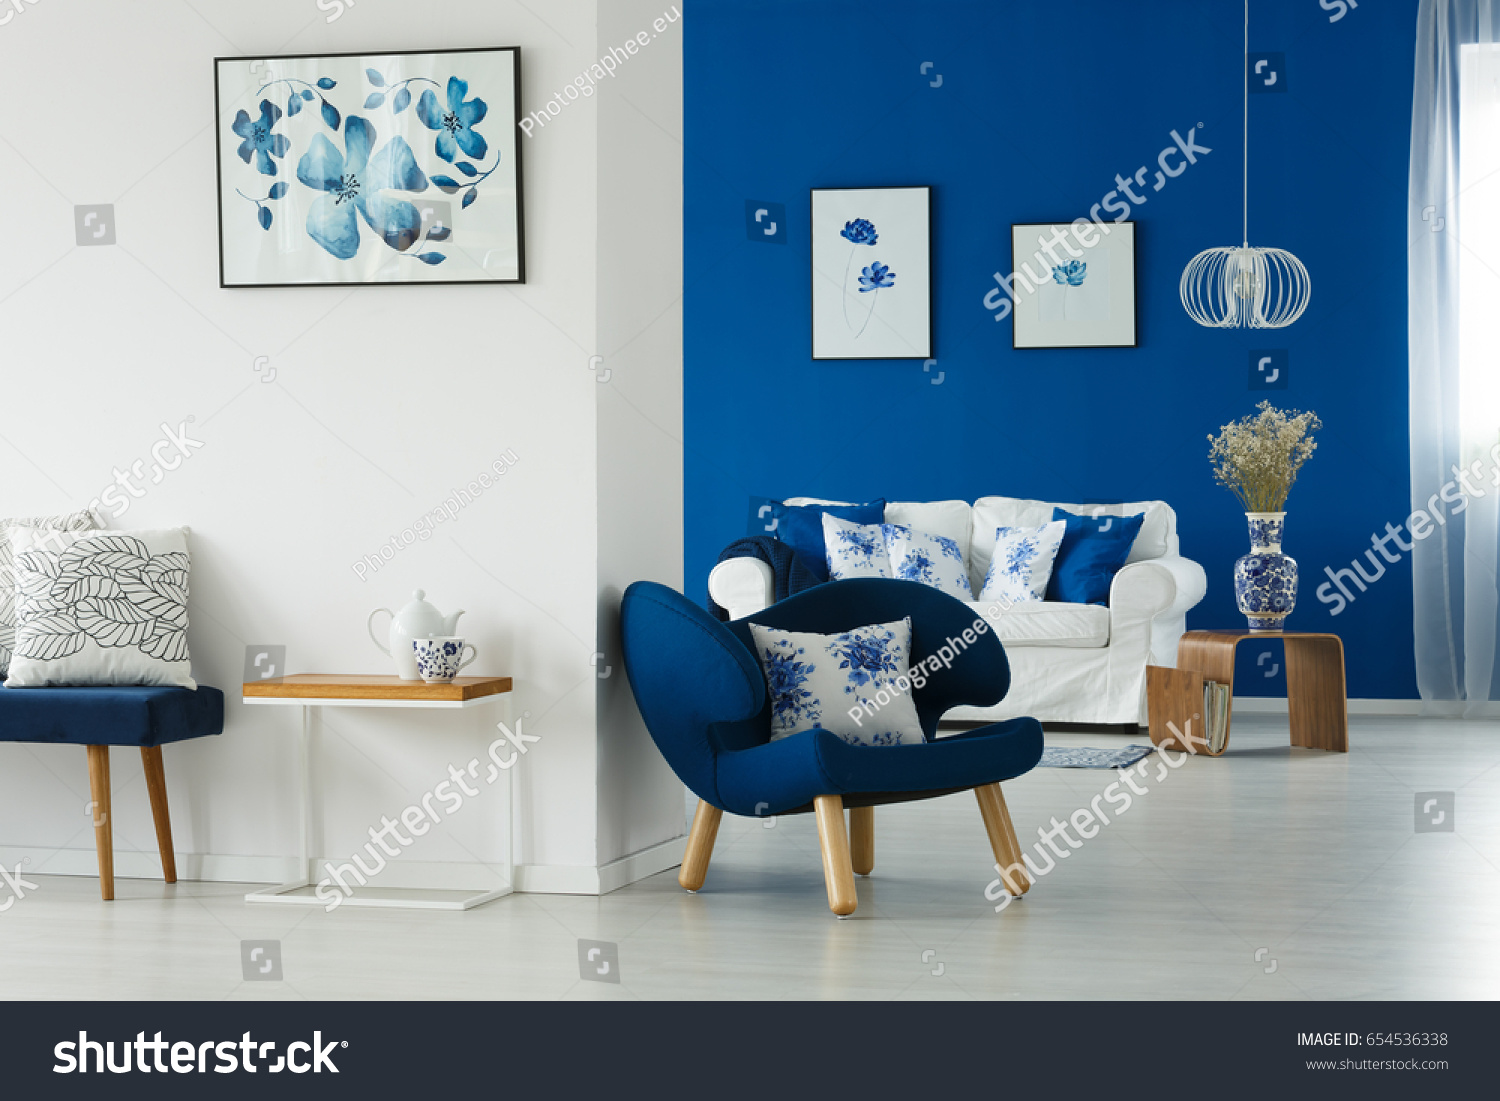 cozy blue white living room flowery stock photo 654536338 cozy blue and white living room with flowery patterns on pillows and posters